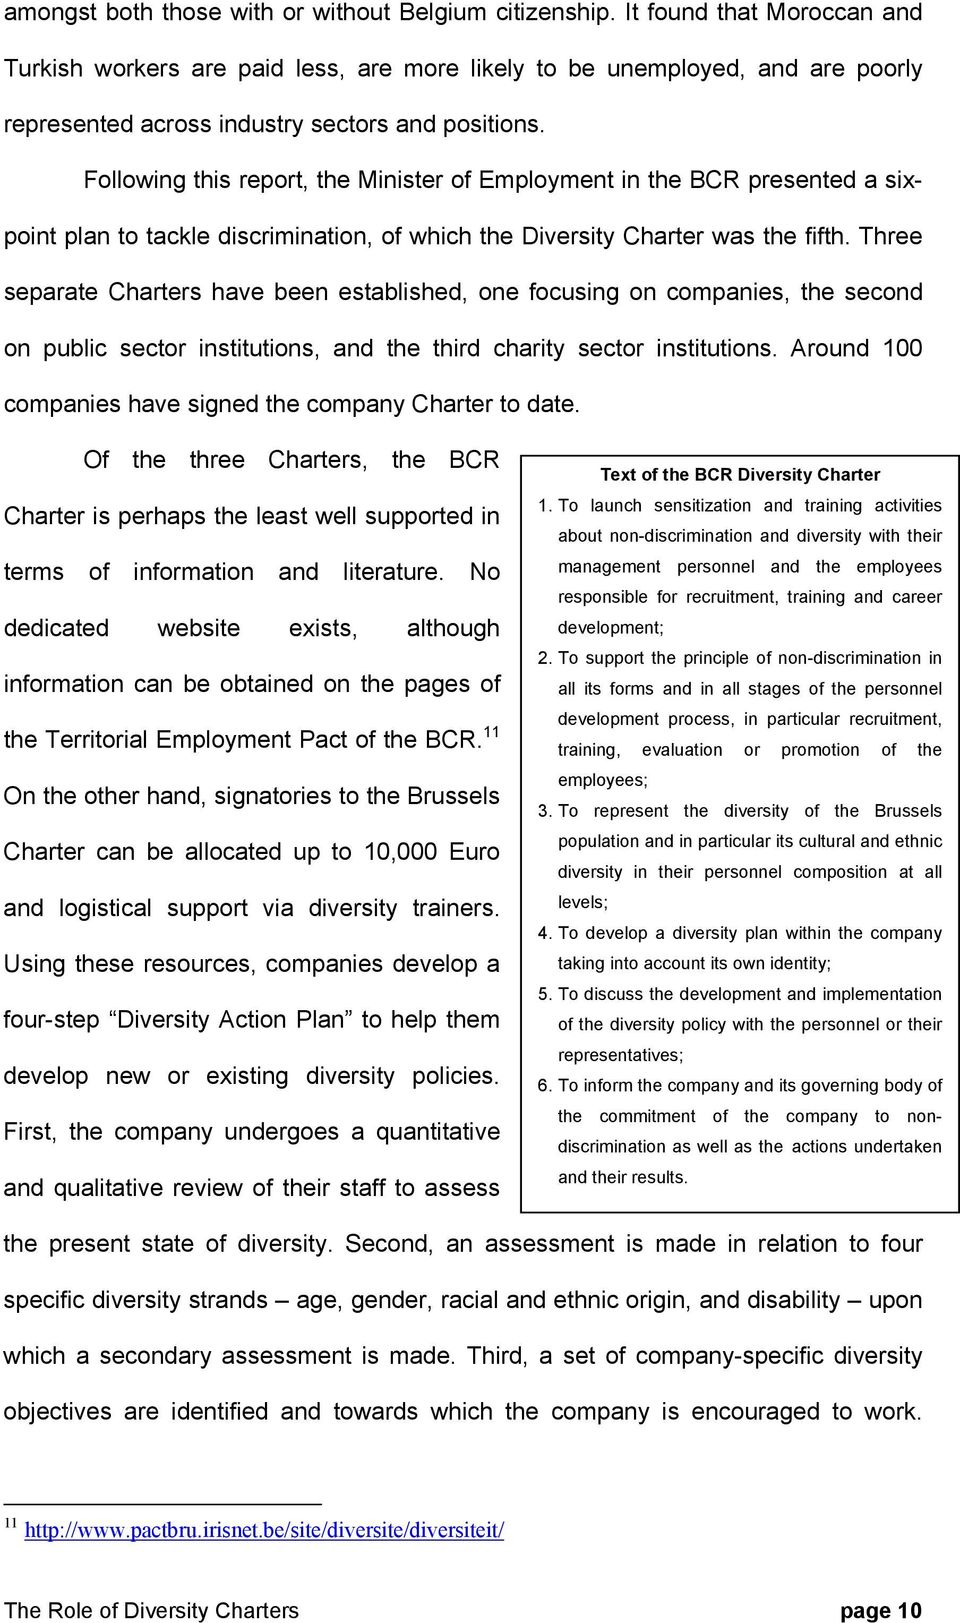 Following this report, the Minister of Employment in the BCR presented a sixpoint plan to tackle discrimination, of which the Diversity Charter was the fifth.